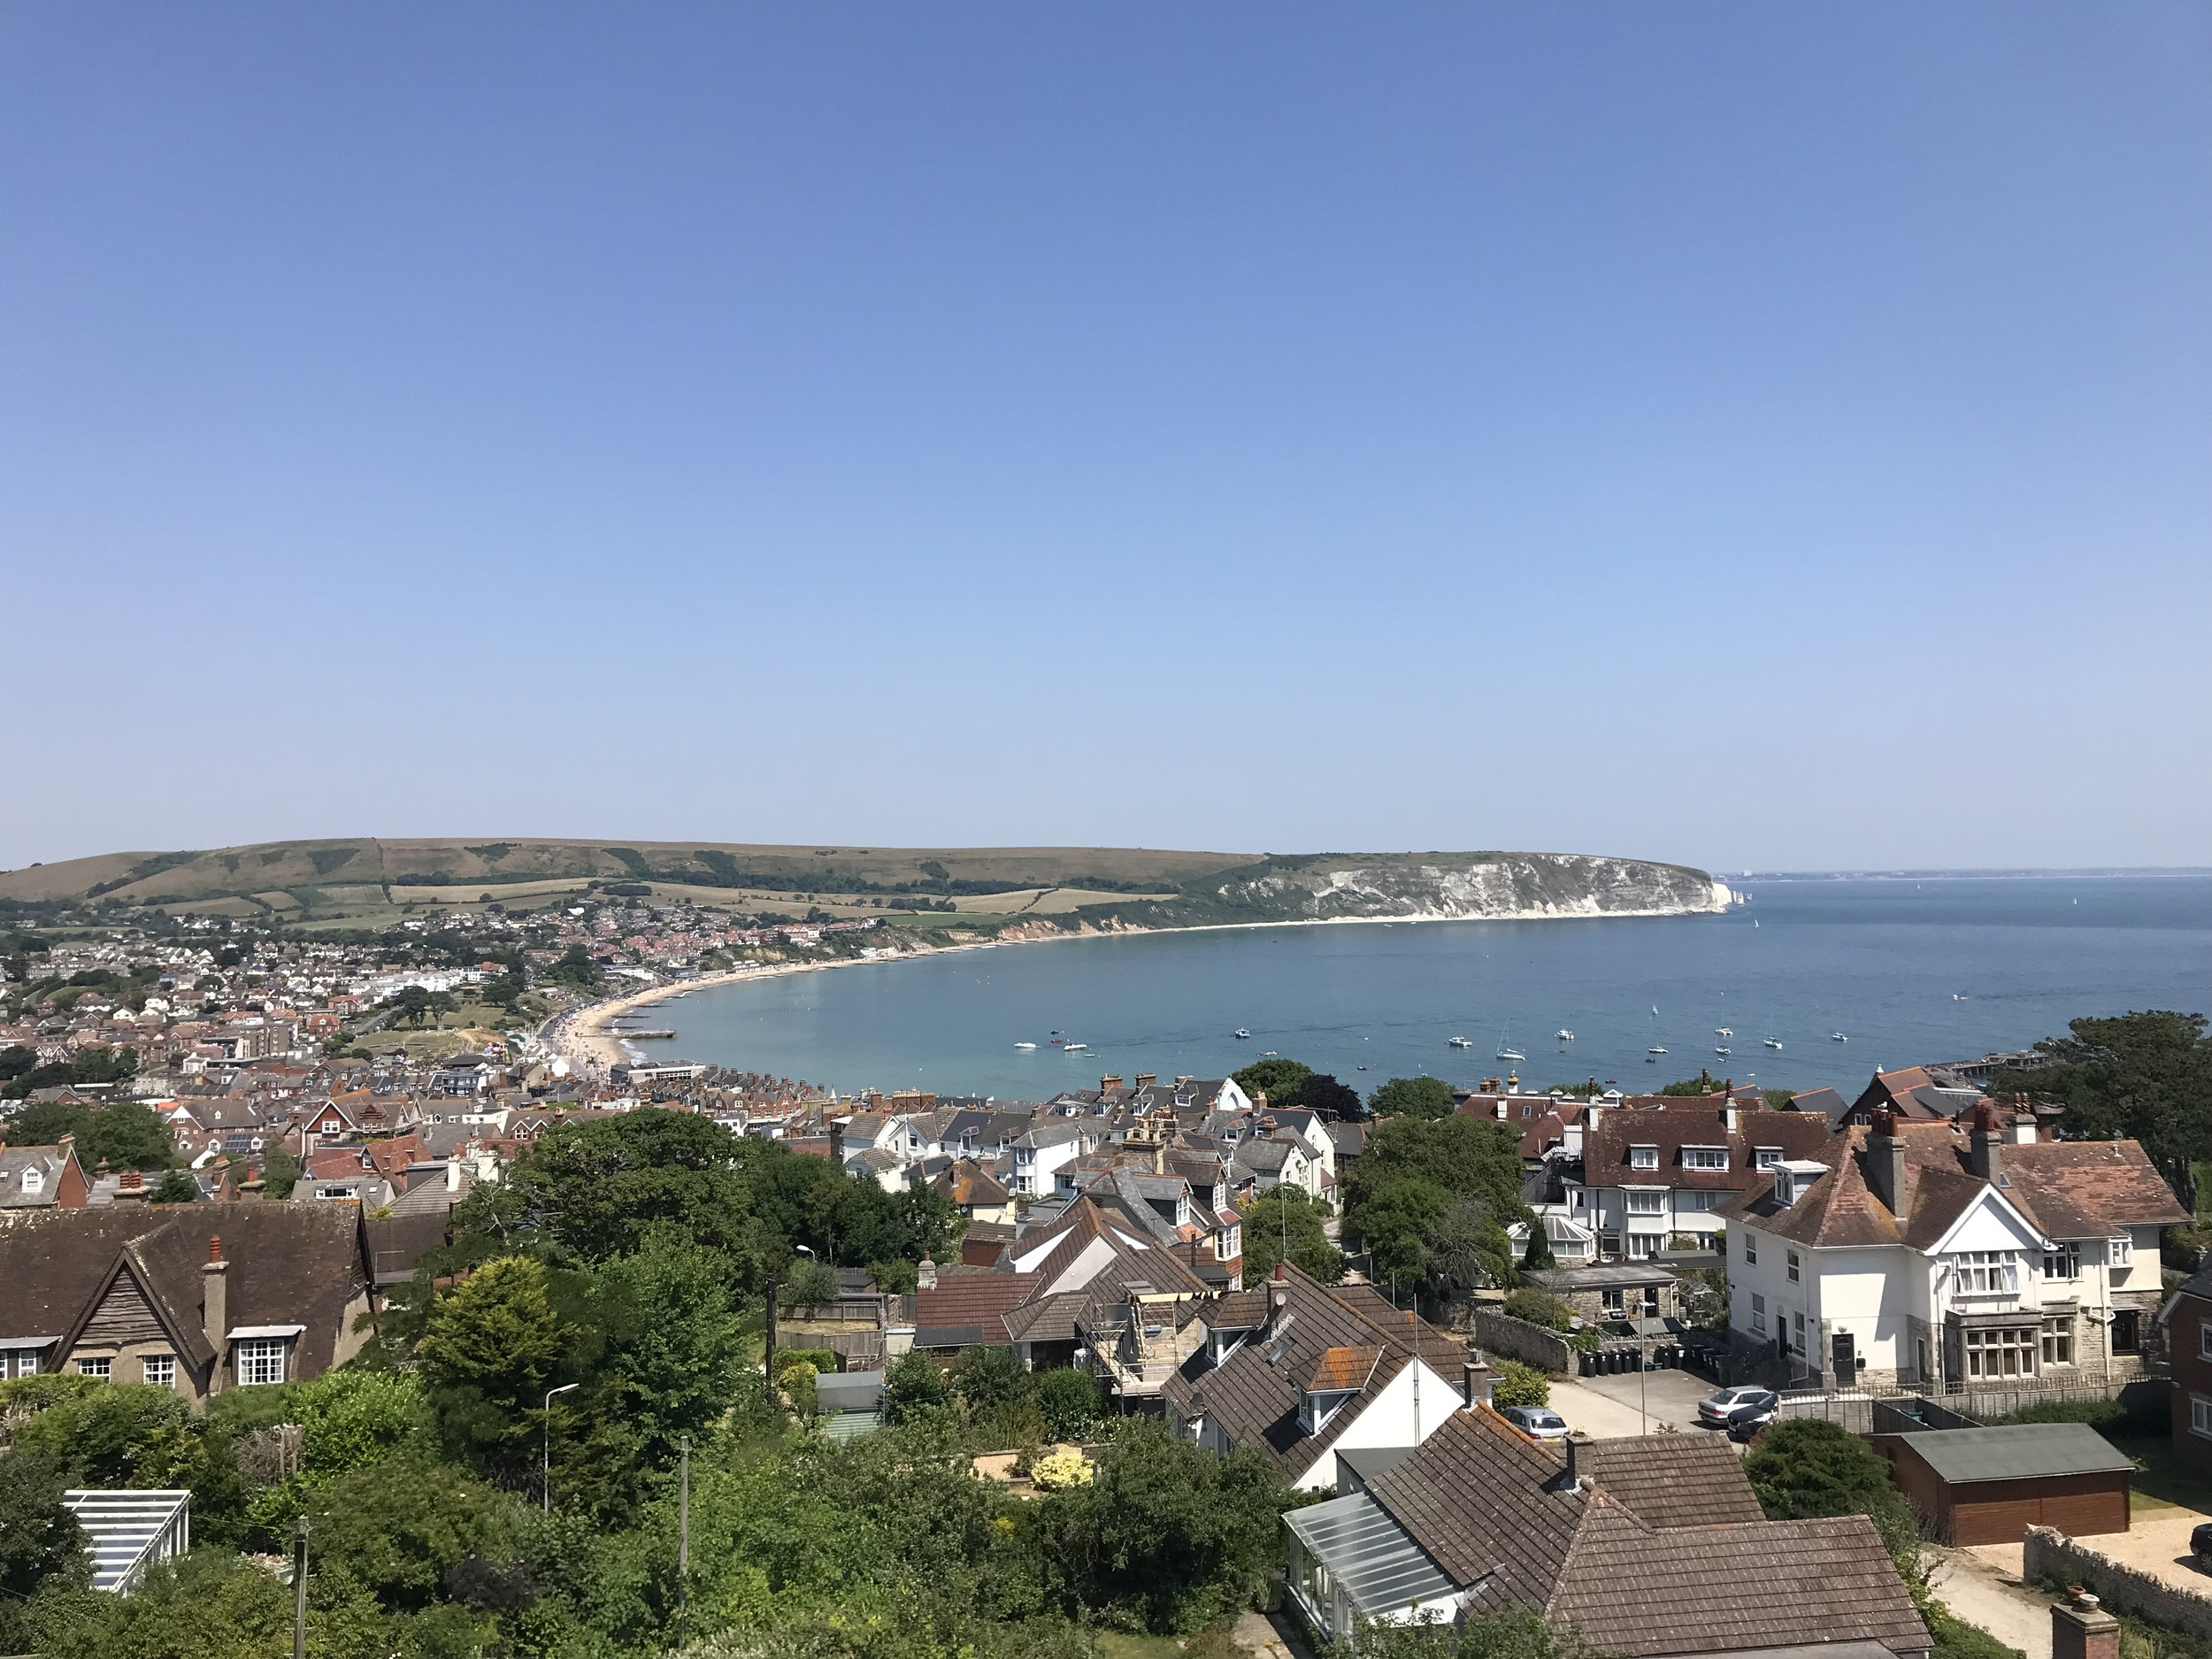 Returning back home to Swanage in baking heat and sun, if not a touch too little wind!